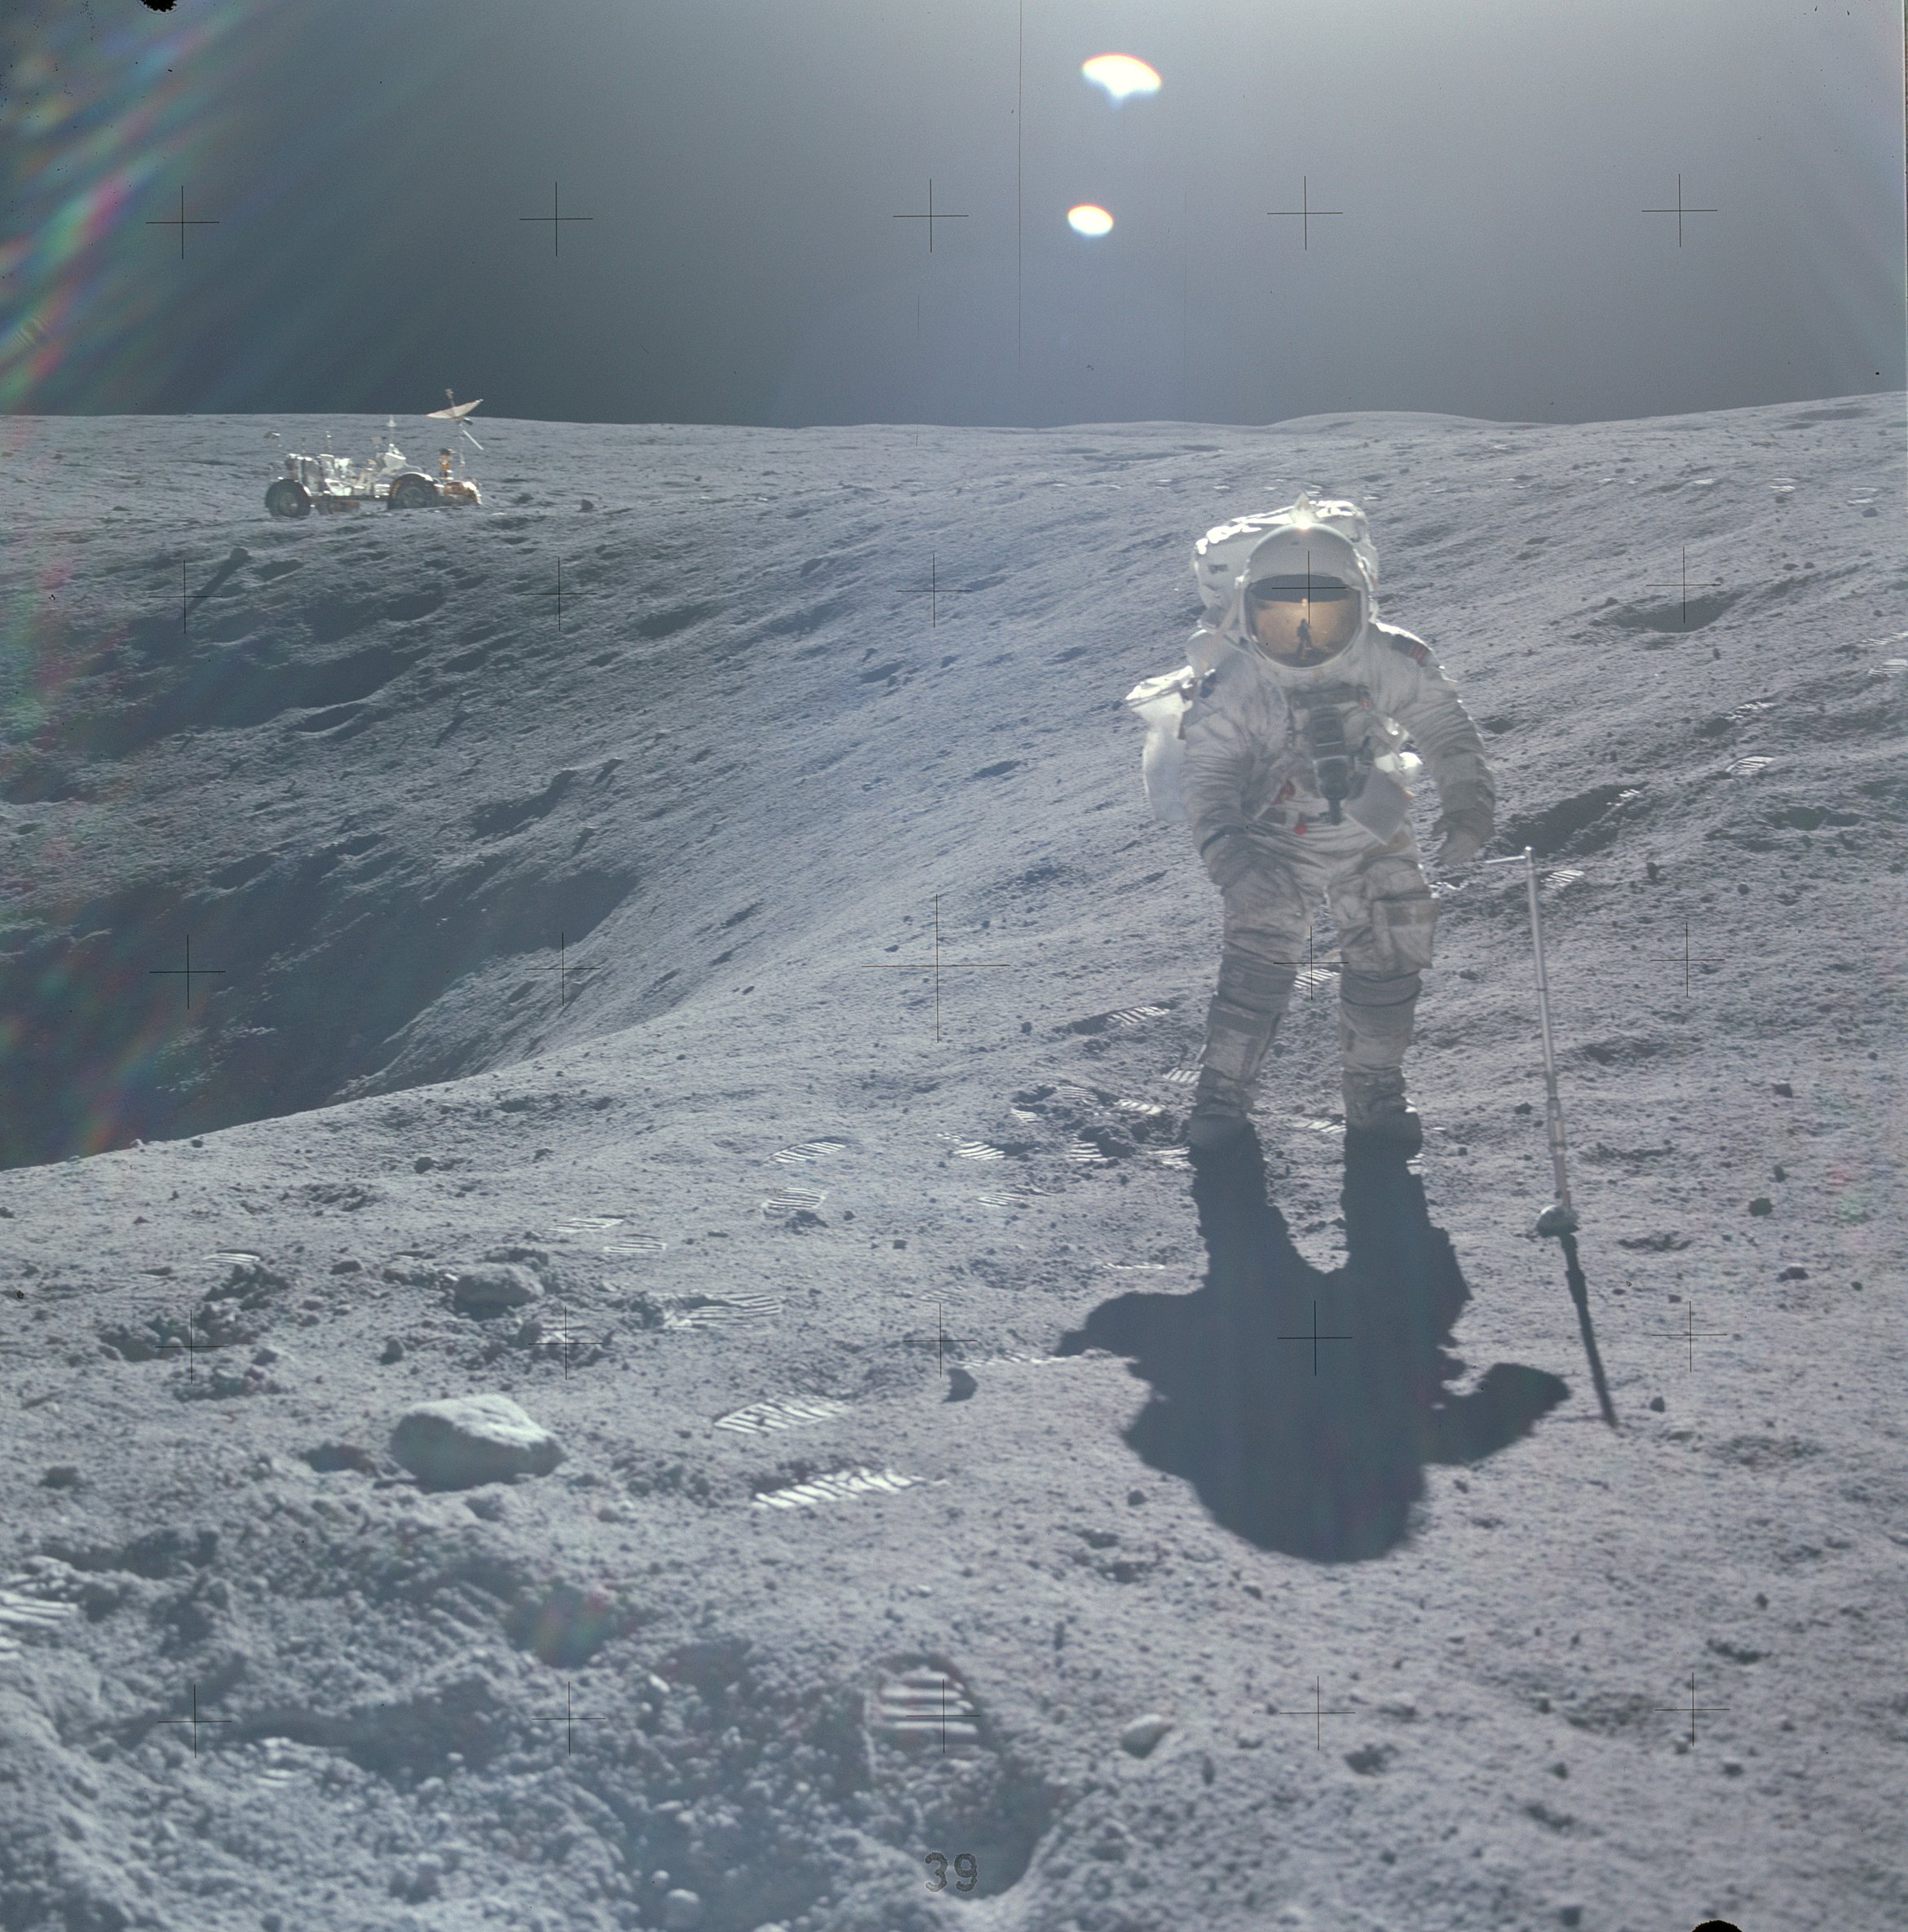 Astronauts see UFO's on Moon, NASA erases Tapes - Old ...